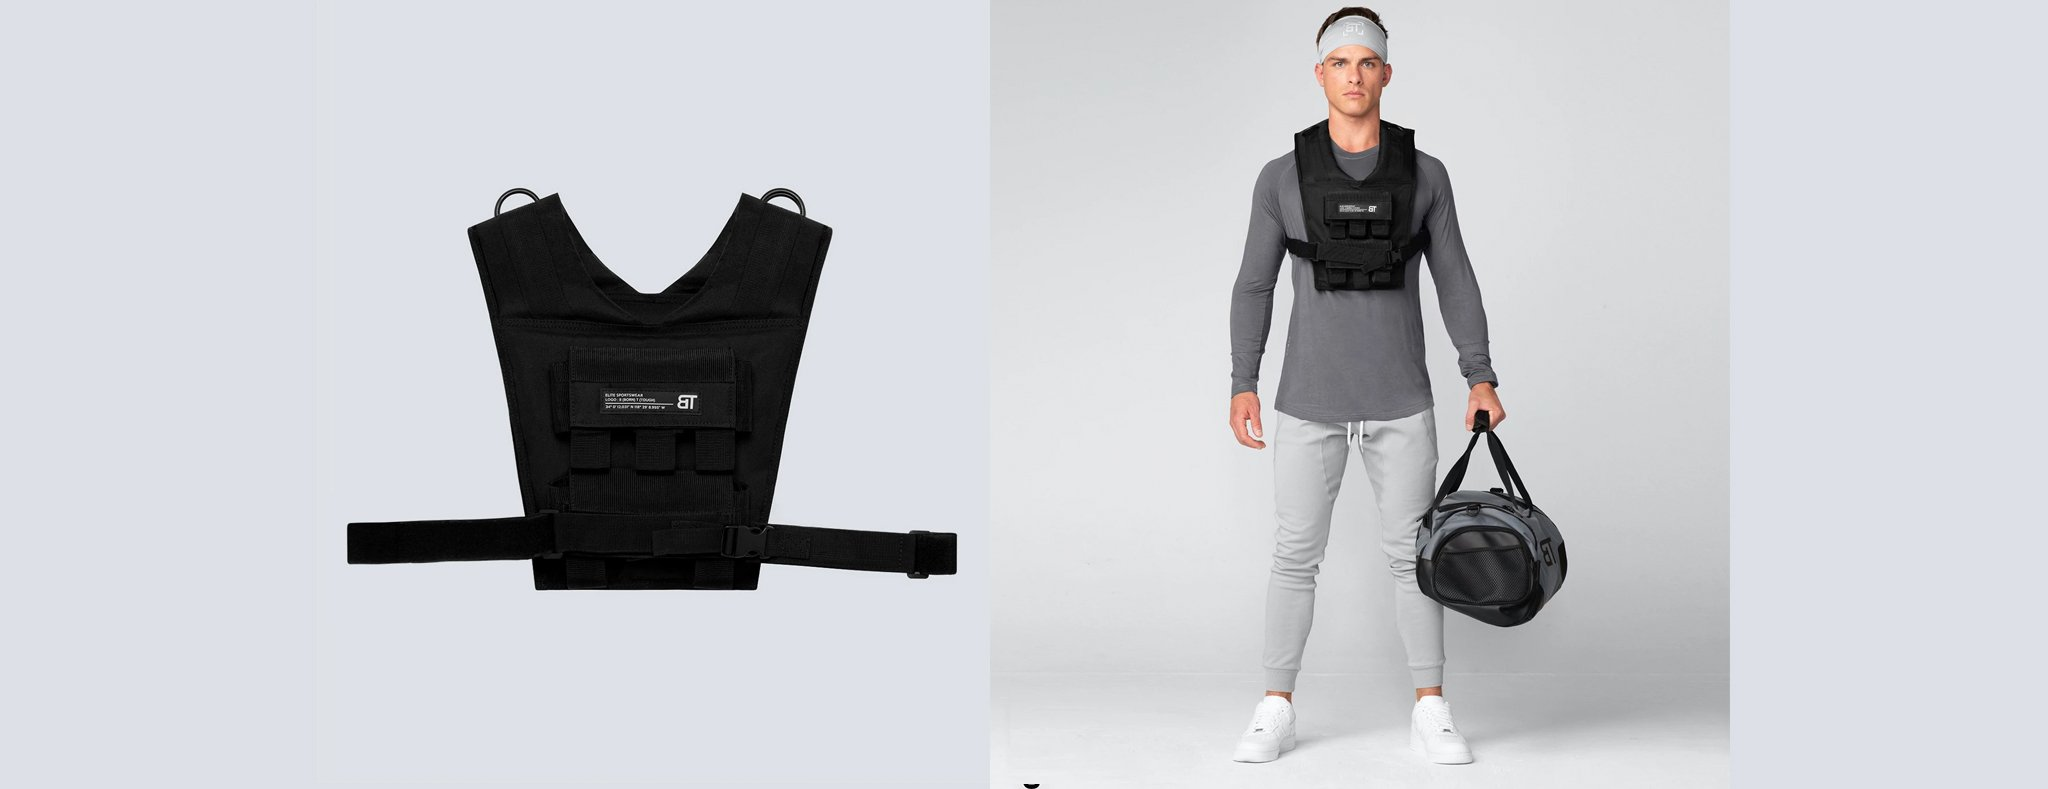 Born Tough Weighted Vest